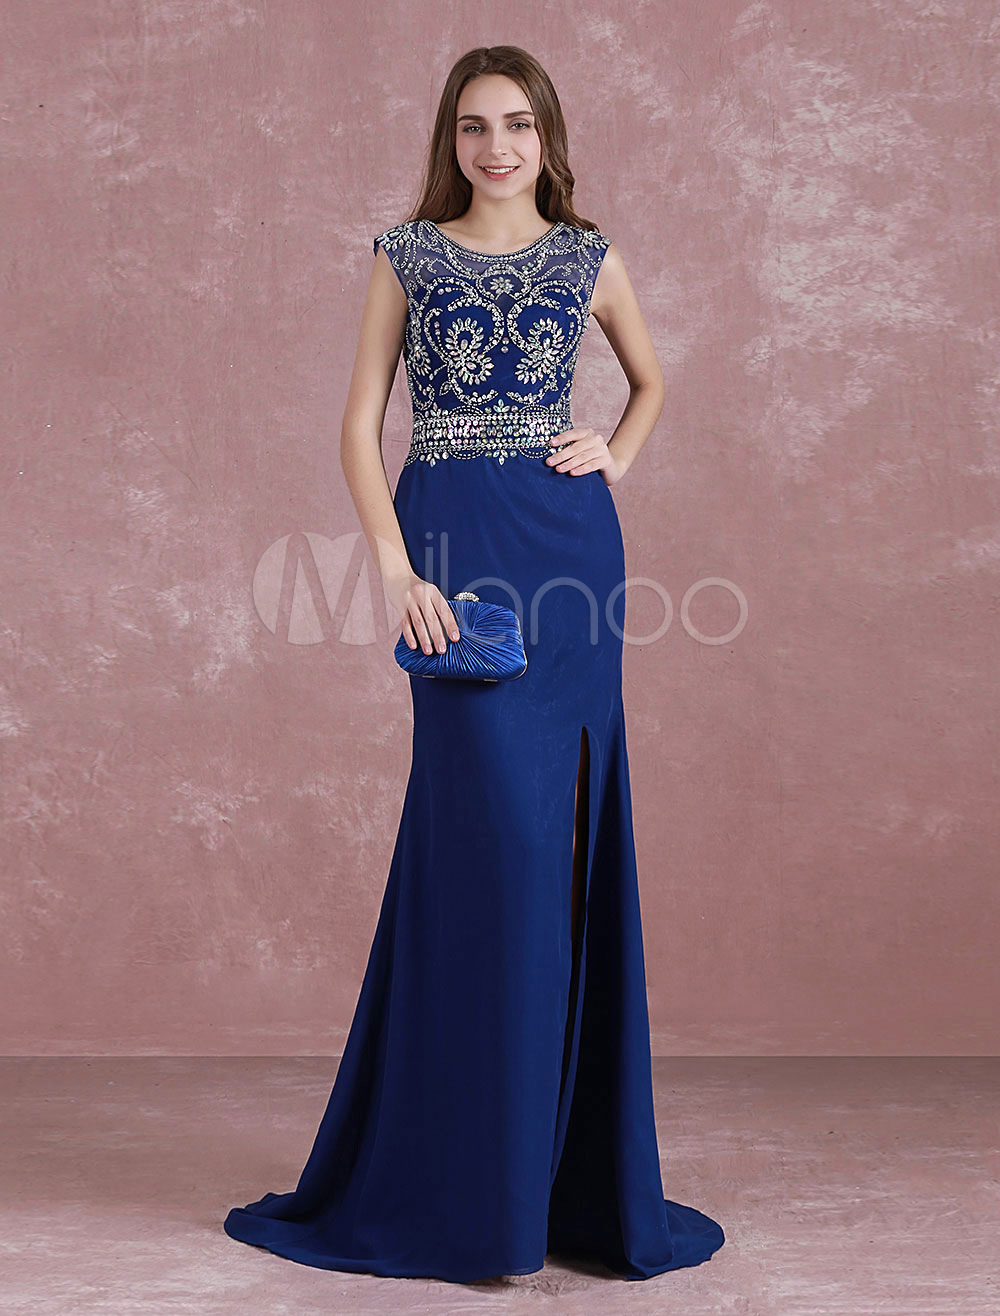 Buy Royal Blue Prom Dress Mermaid Split Graduation Dress Beading Illusion Back Sweep Train Chiffon Party Dress for $152.99 in Milanoo store